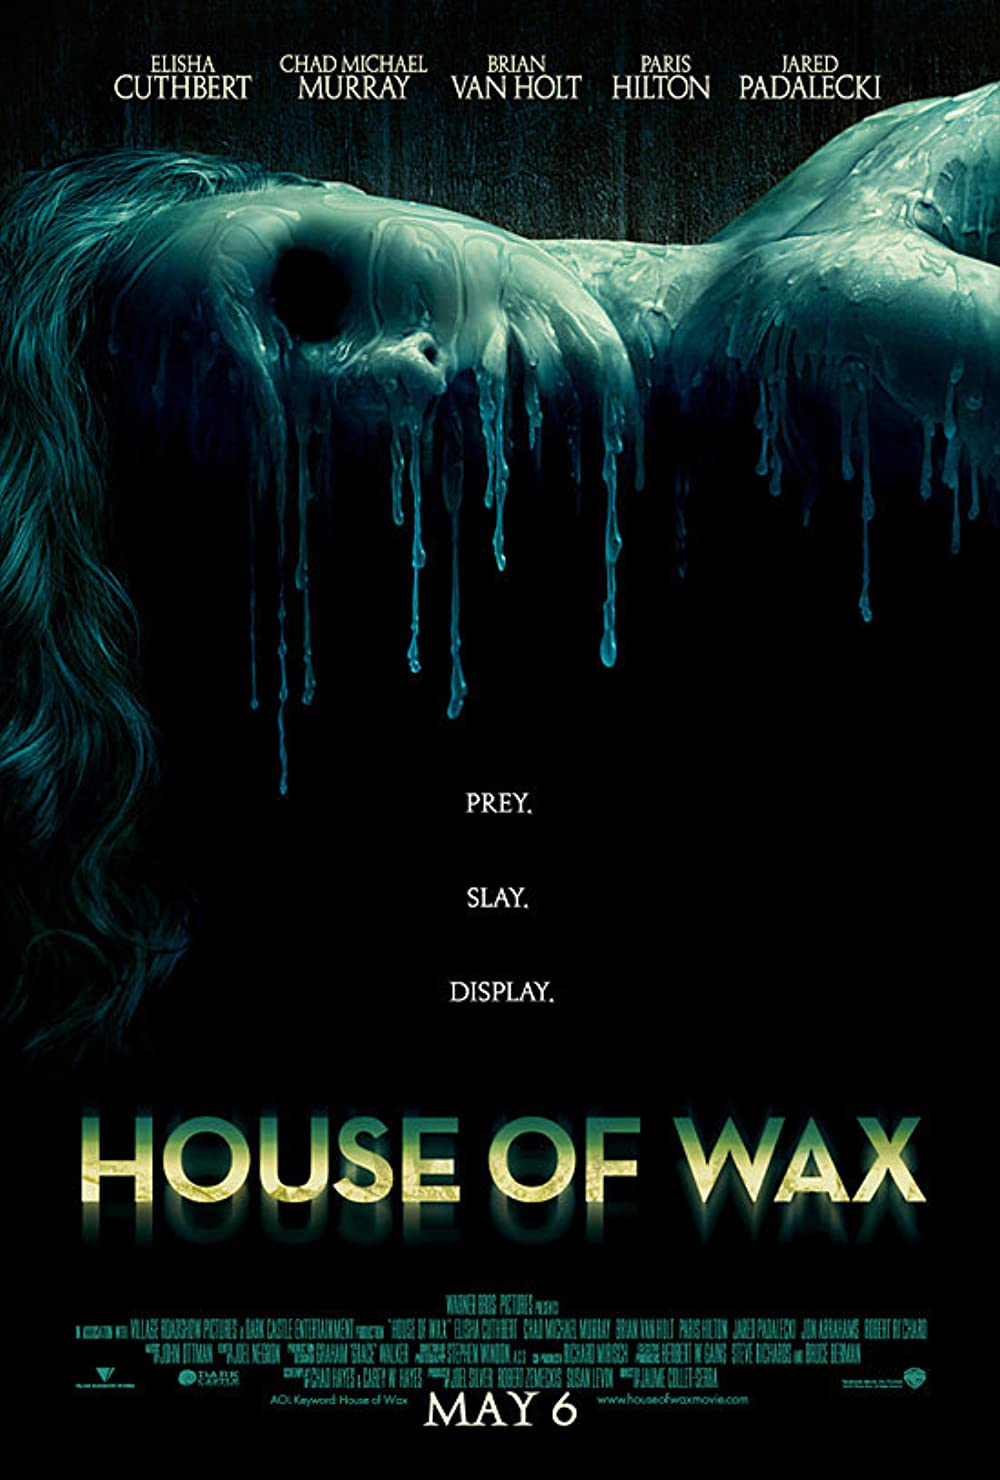 Poster for House of Wax (2005)